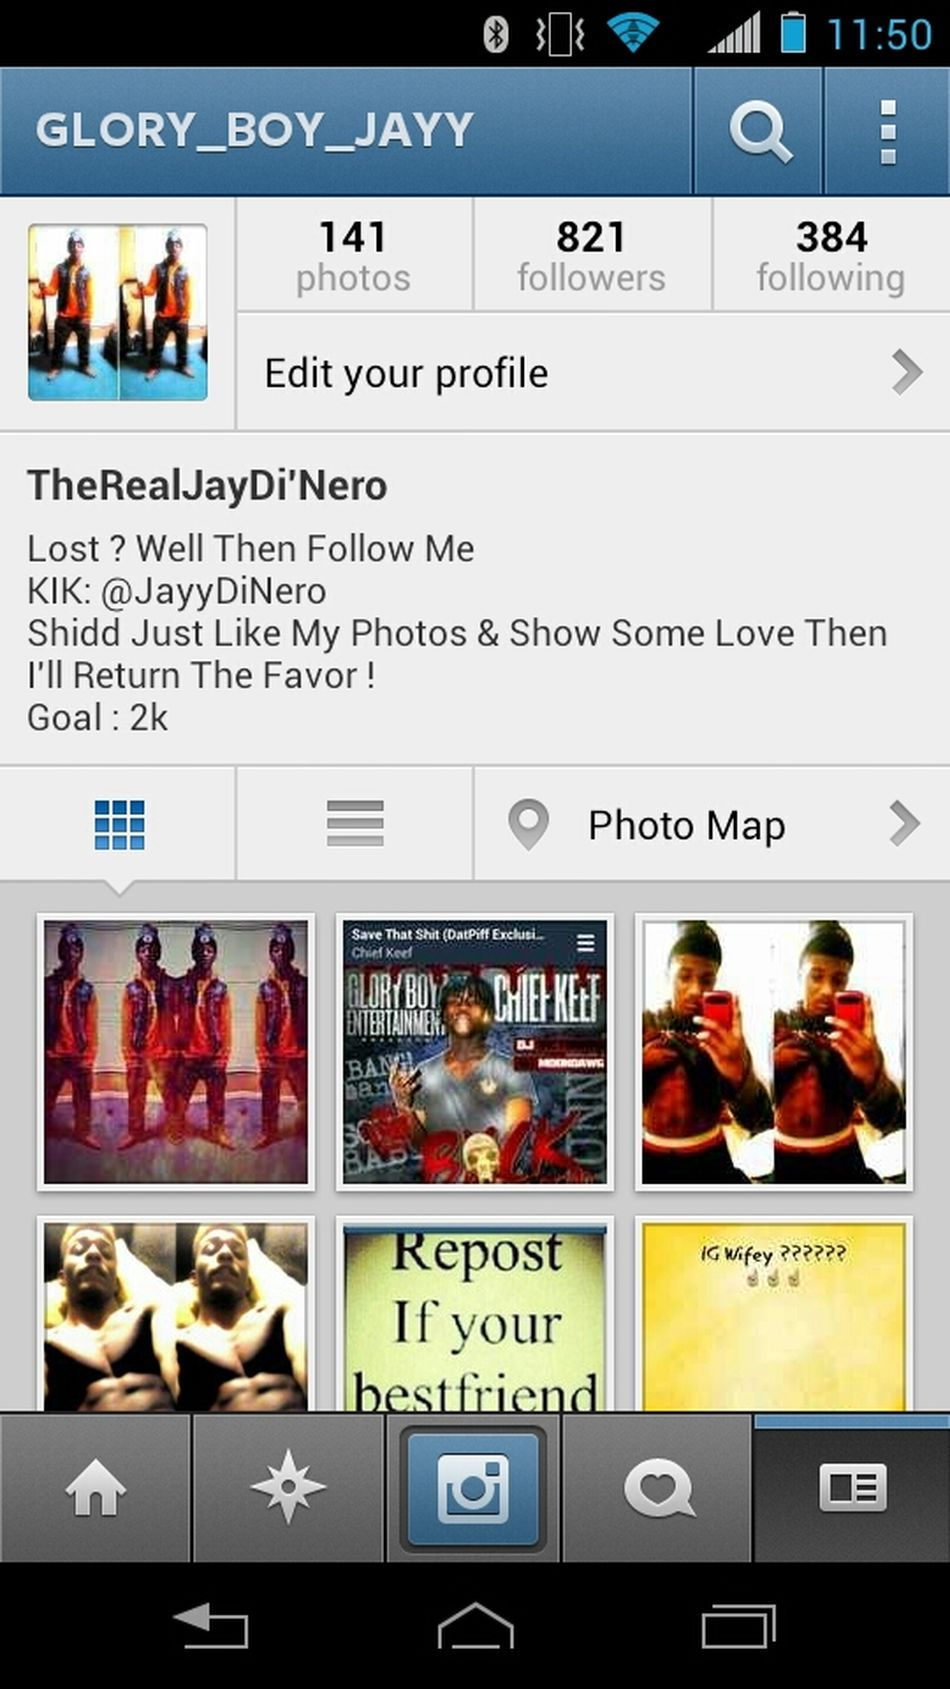 Follow Me On Instagram @ Glory_Boy_Jayy